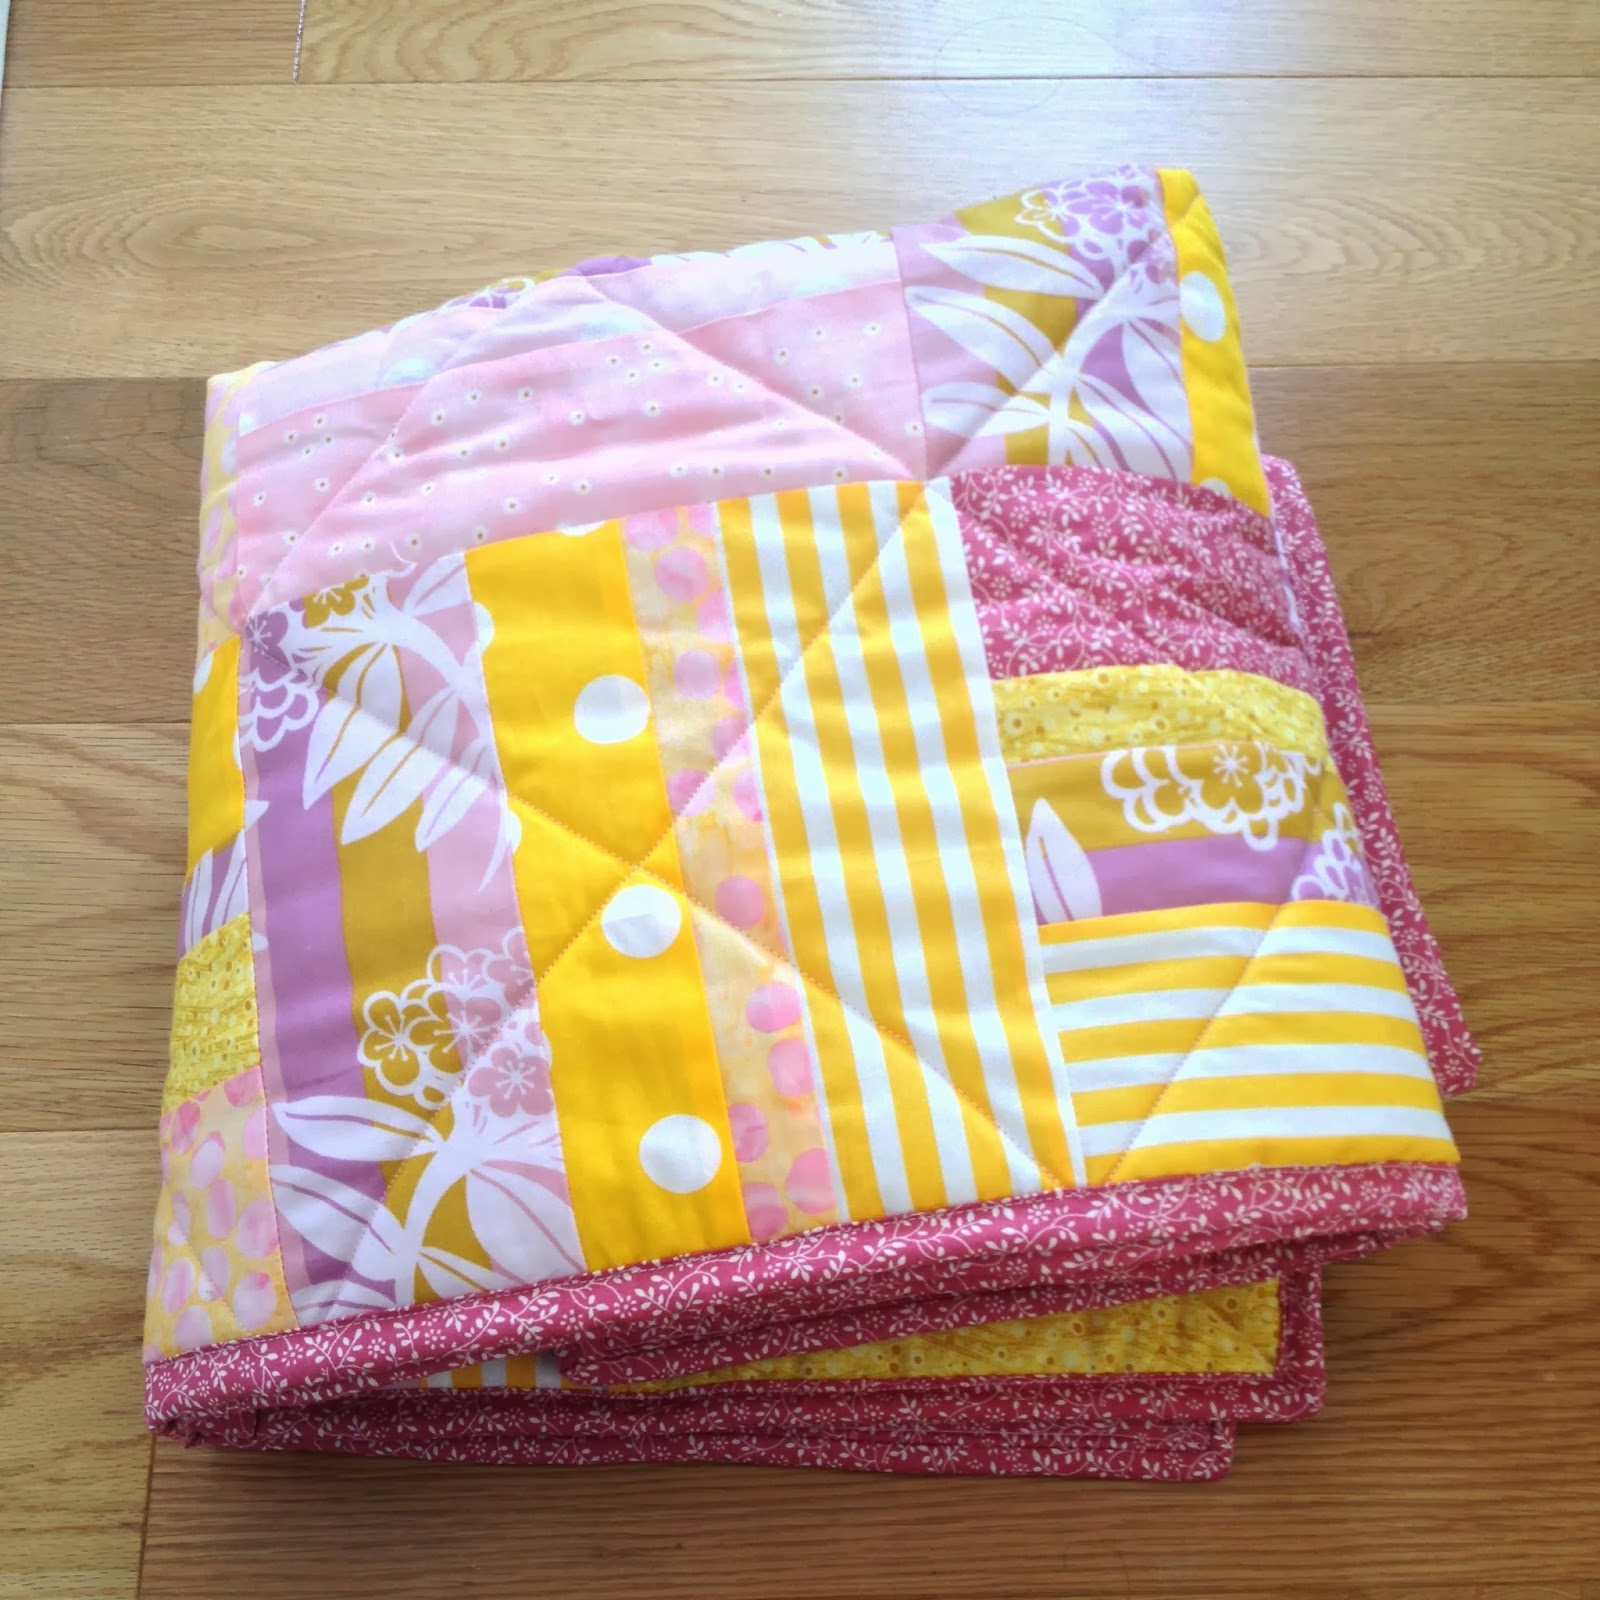 http://creatingincolour.blogspot.co.uk/2013/10/simple-stripes-cot-quilt.htm